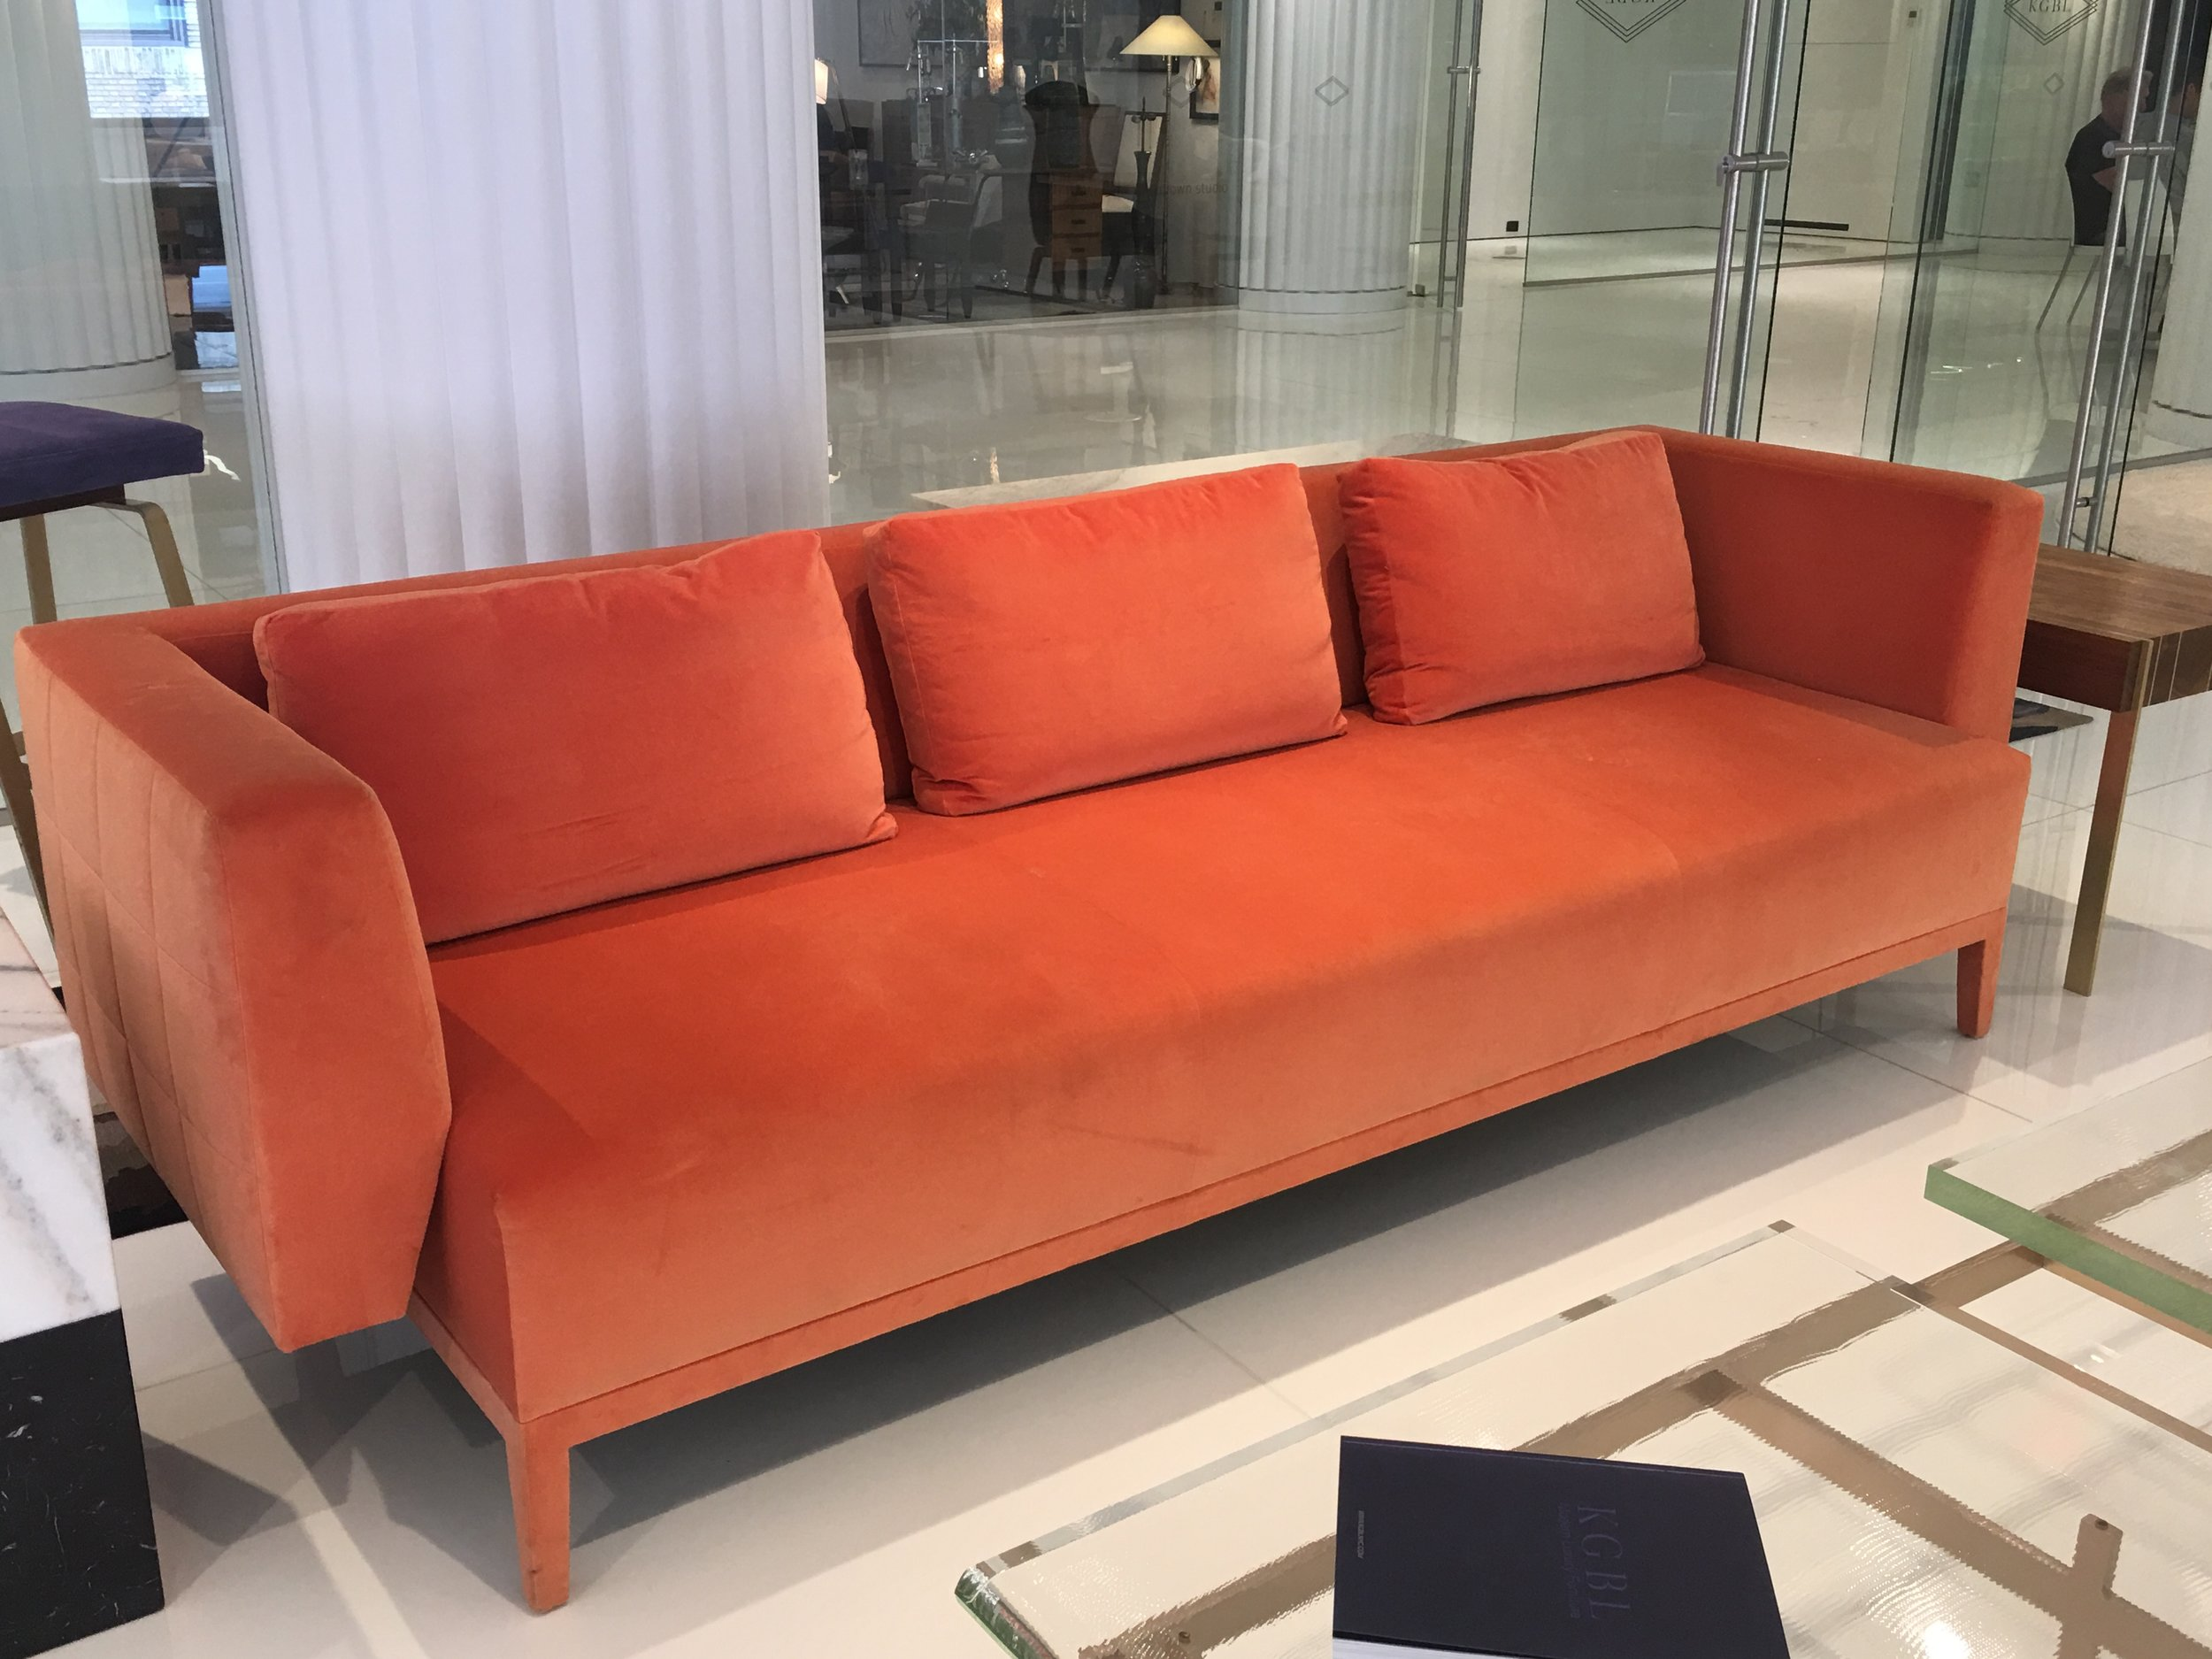 CORAL SOFA AT KGBL SHOWROOM- 200 LEX